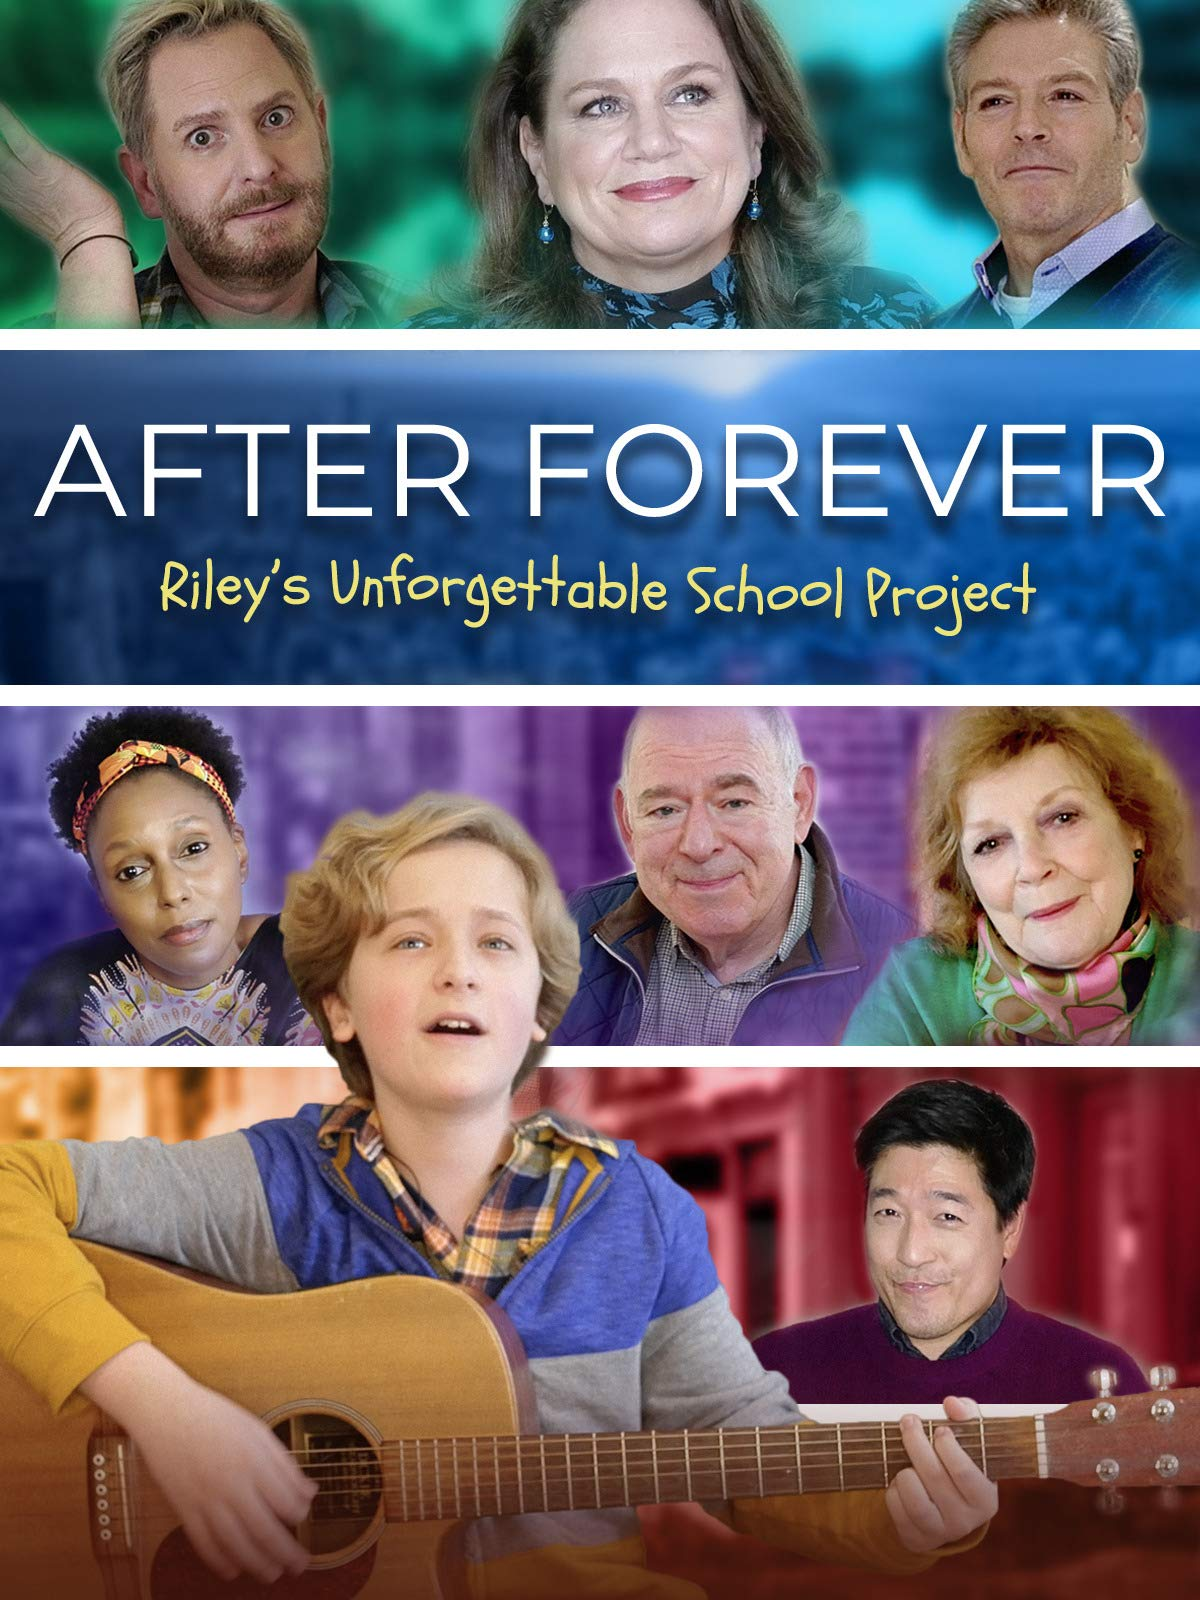 After Forever: Riley's Unforgettable School Project